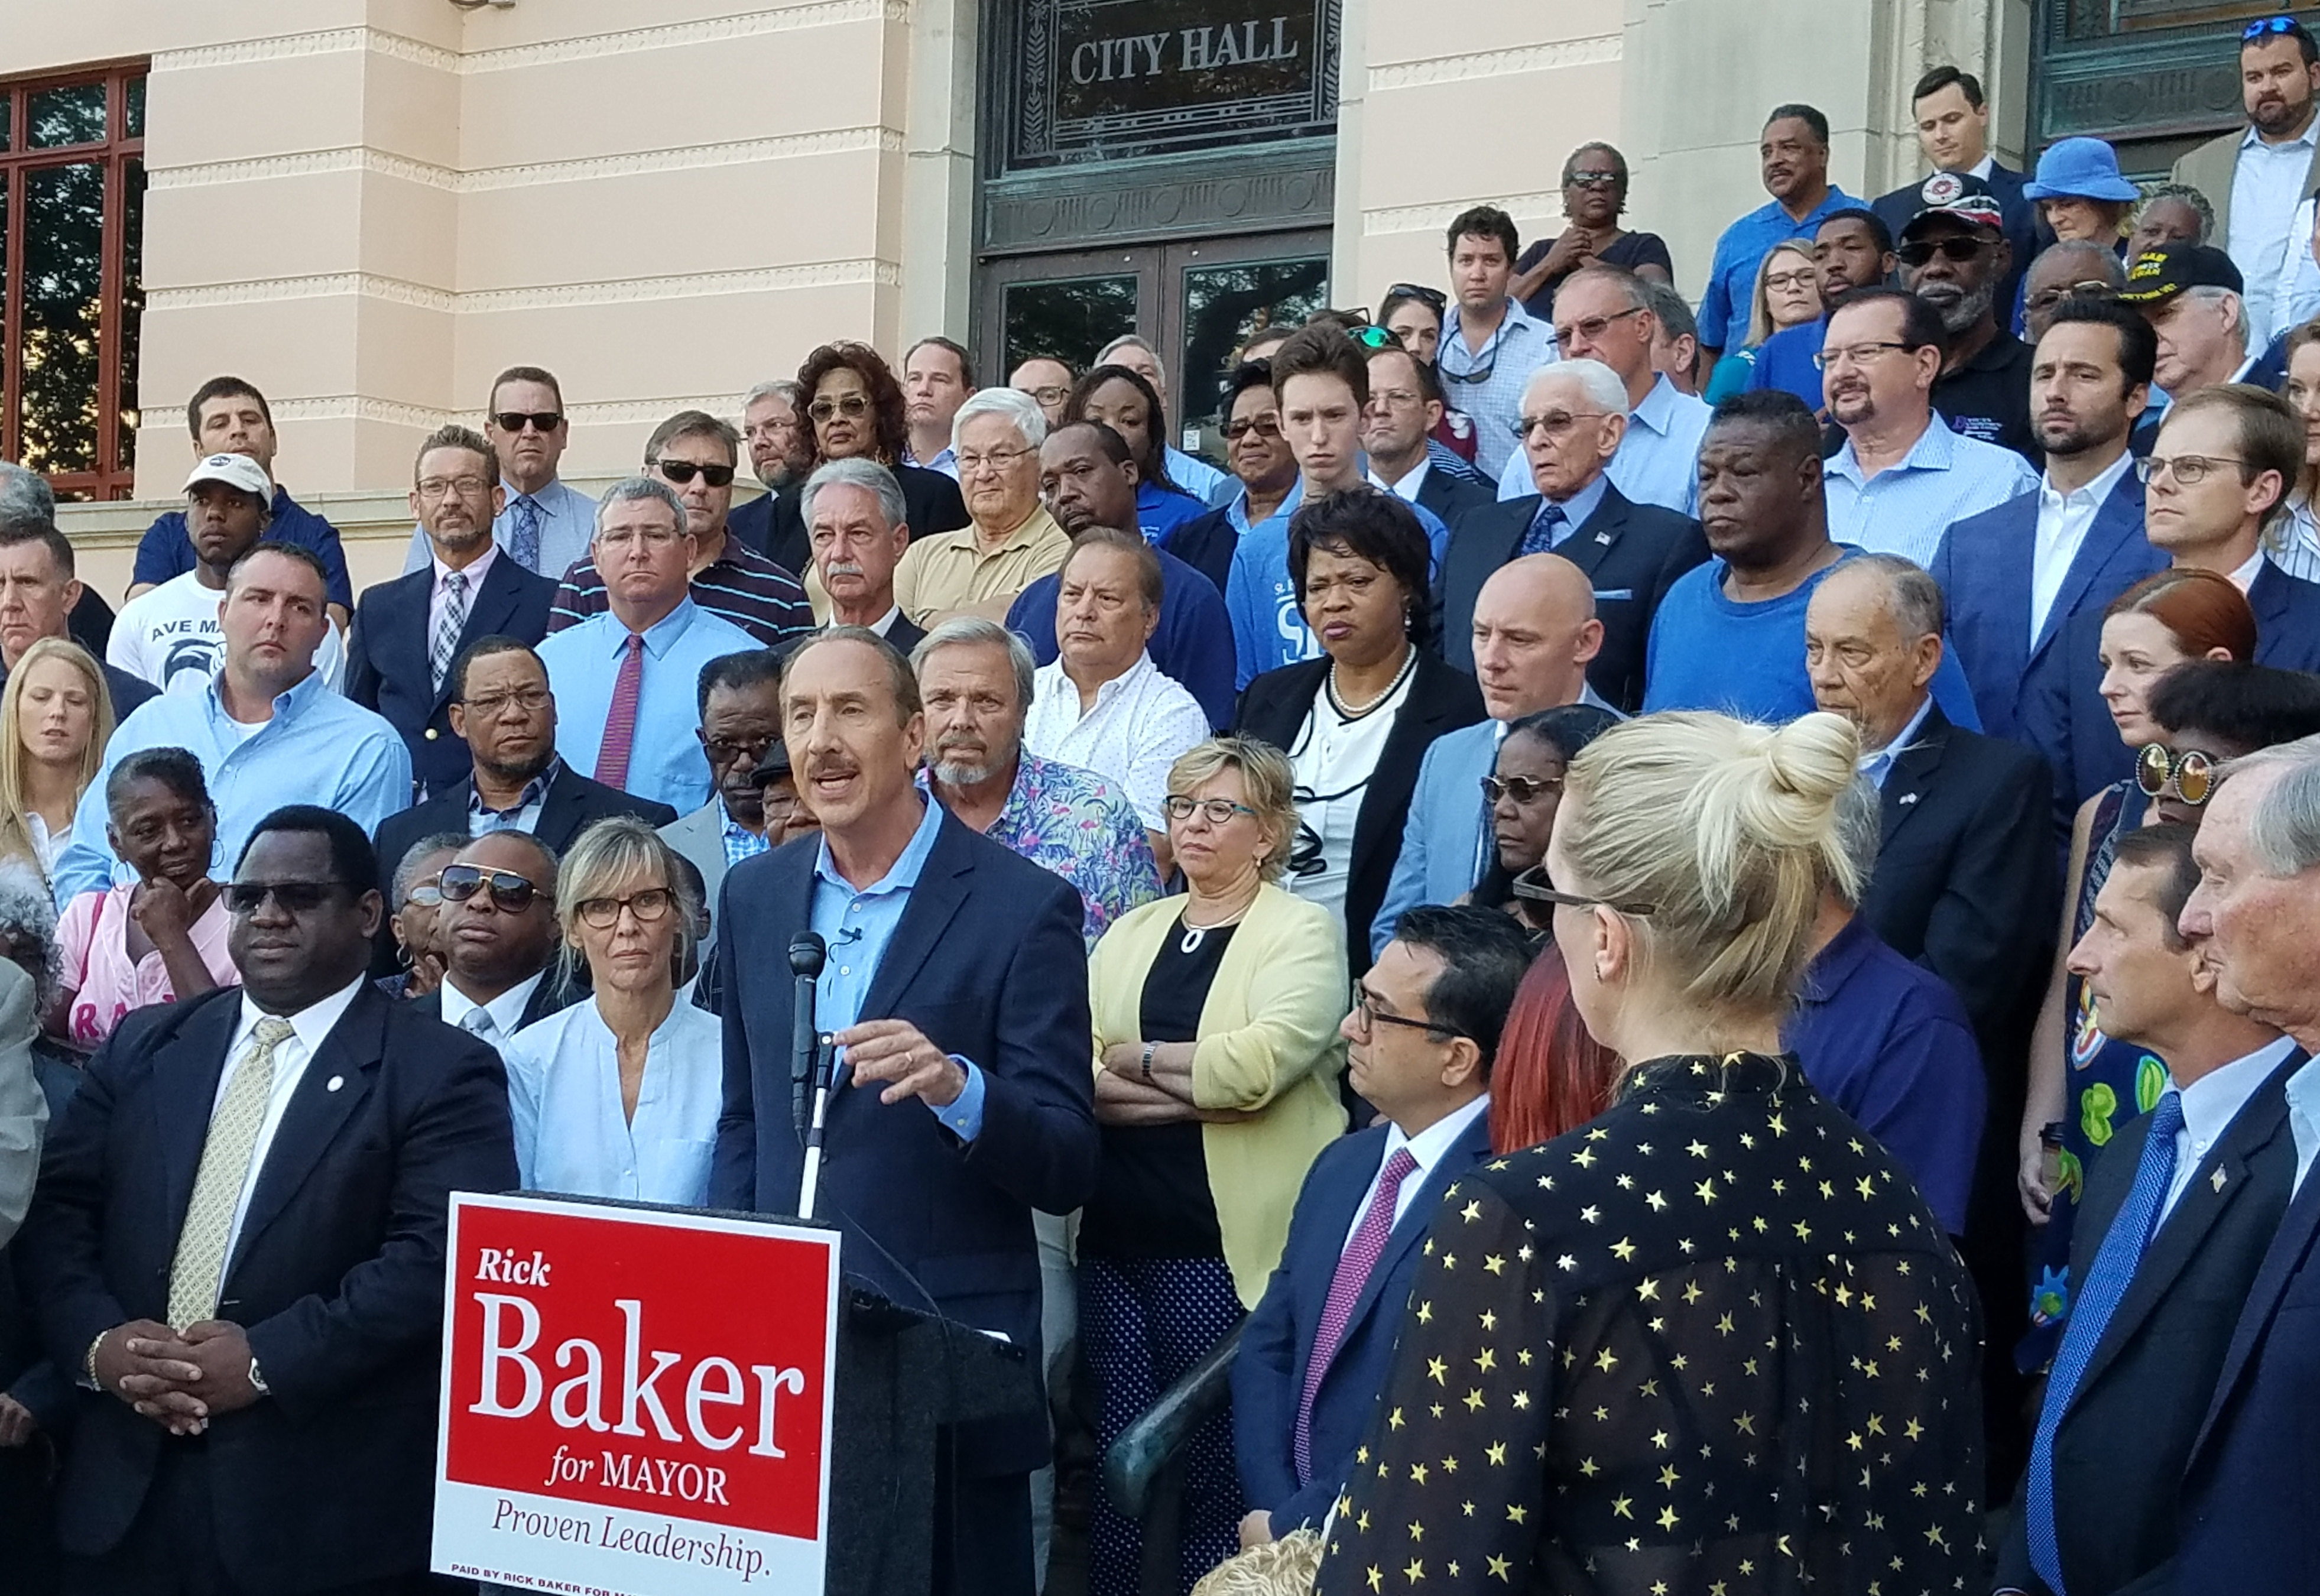 Rick Baker is running again for Mayor of St. Pete